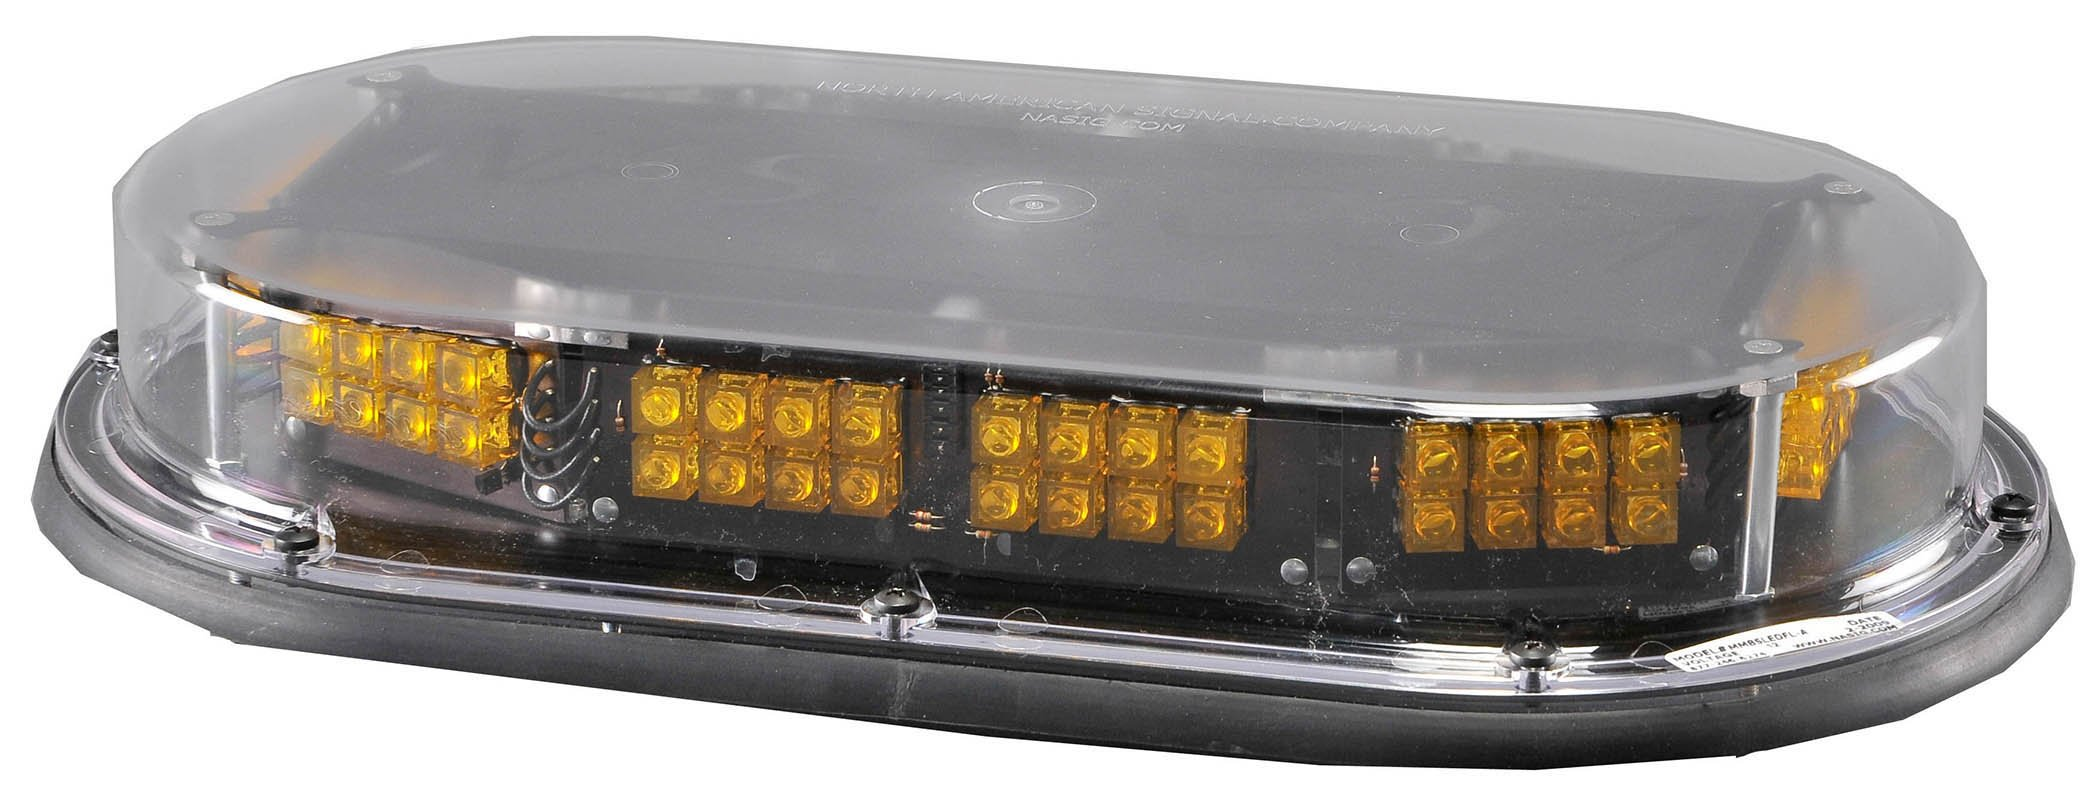 North American Signal MMBSLEDFL-C/A LED Mini Light Bar with Permanent Mount, 12/24V, 1.4A Current, Amber by North American Signal